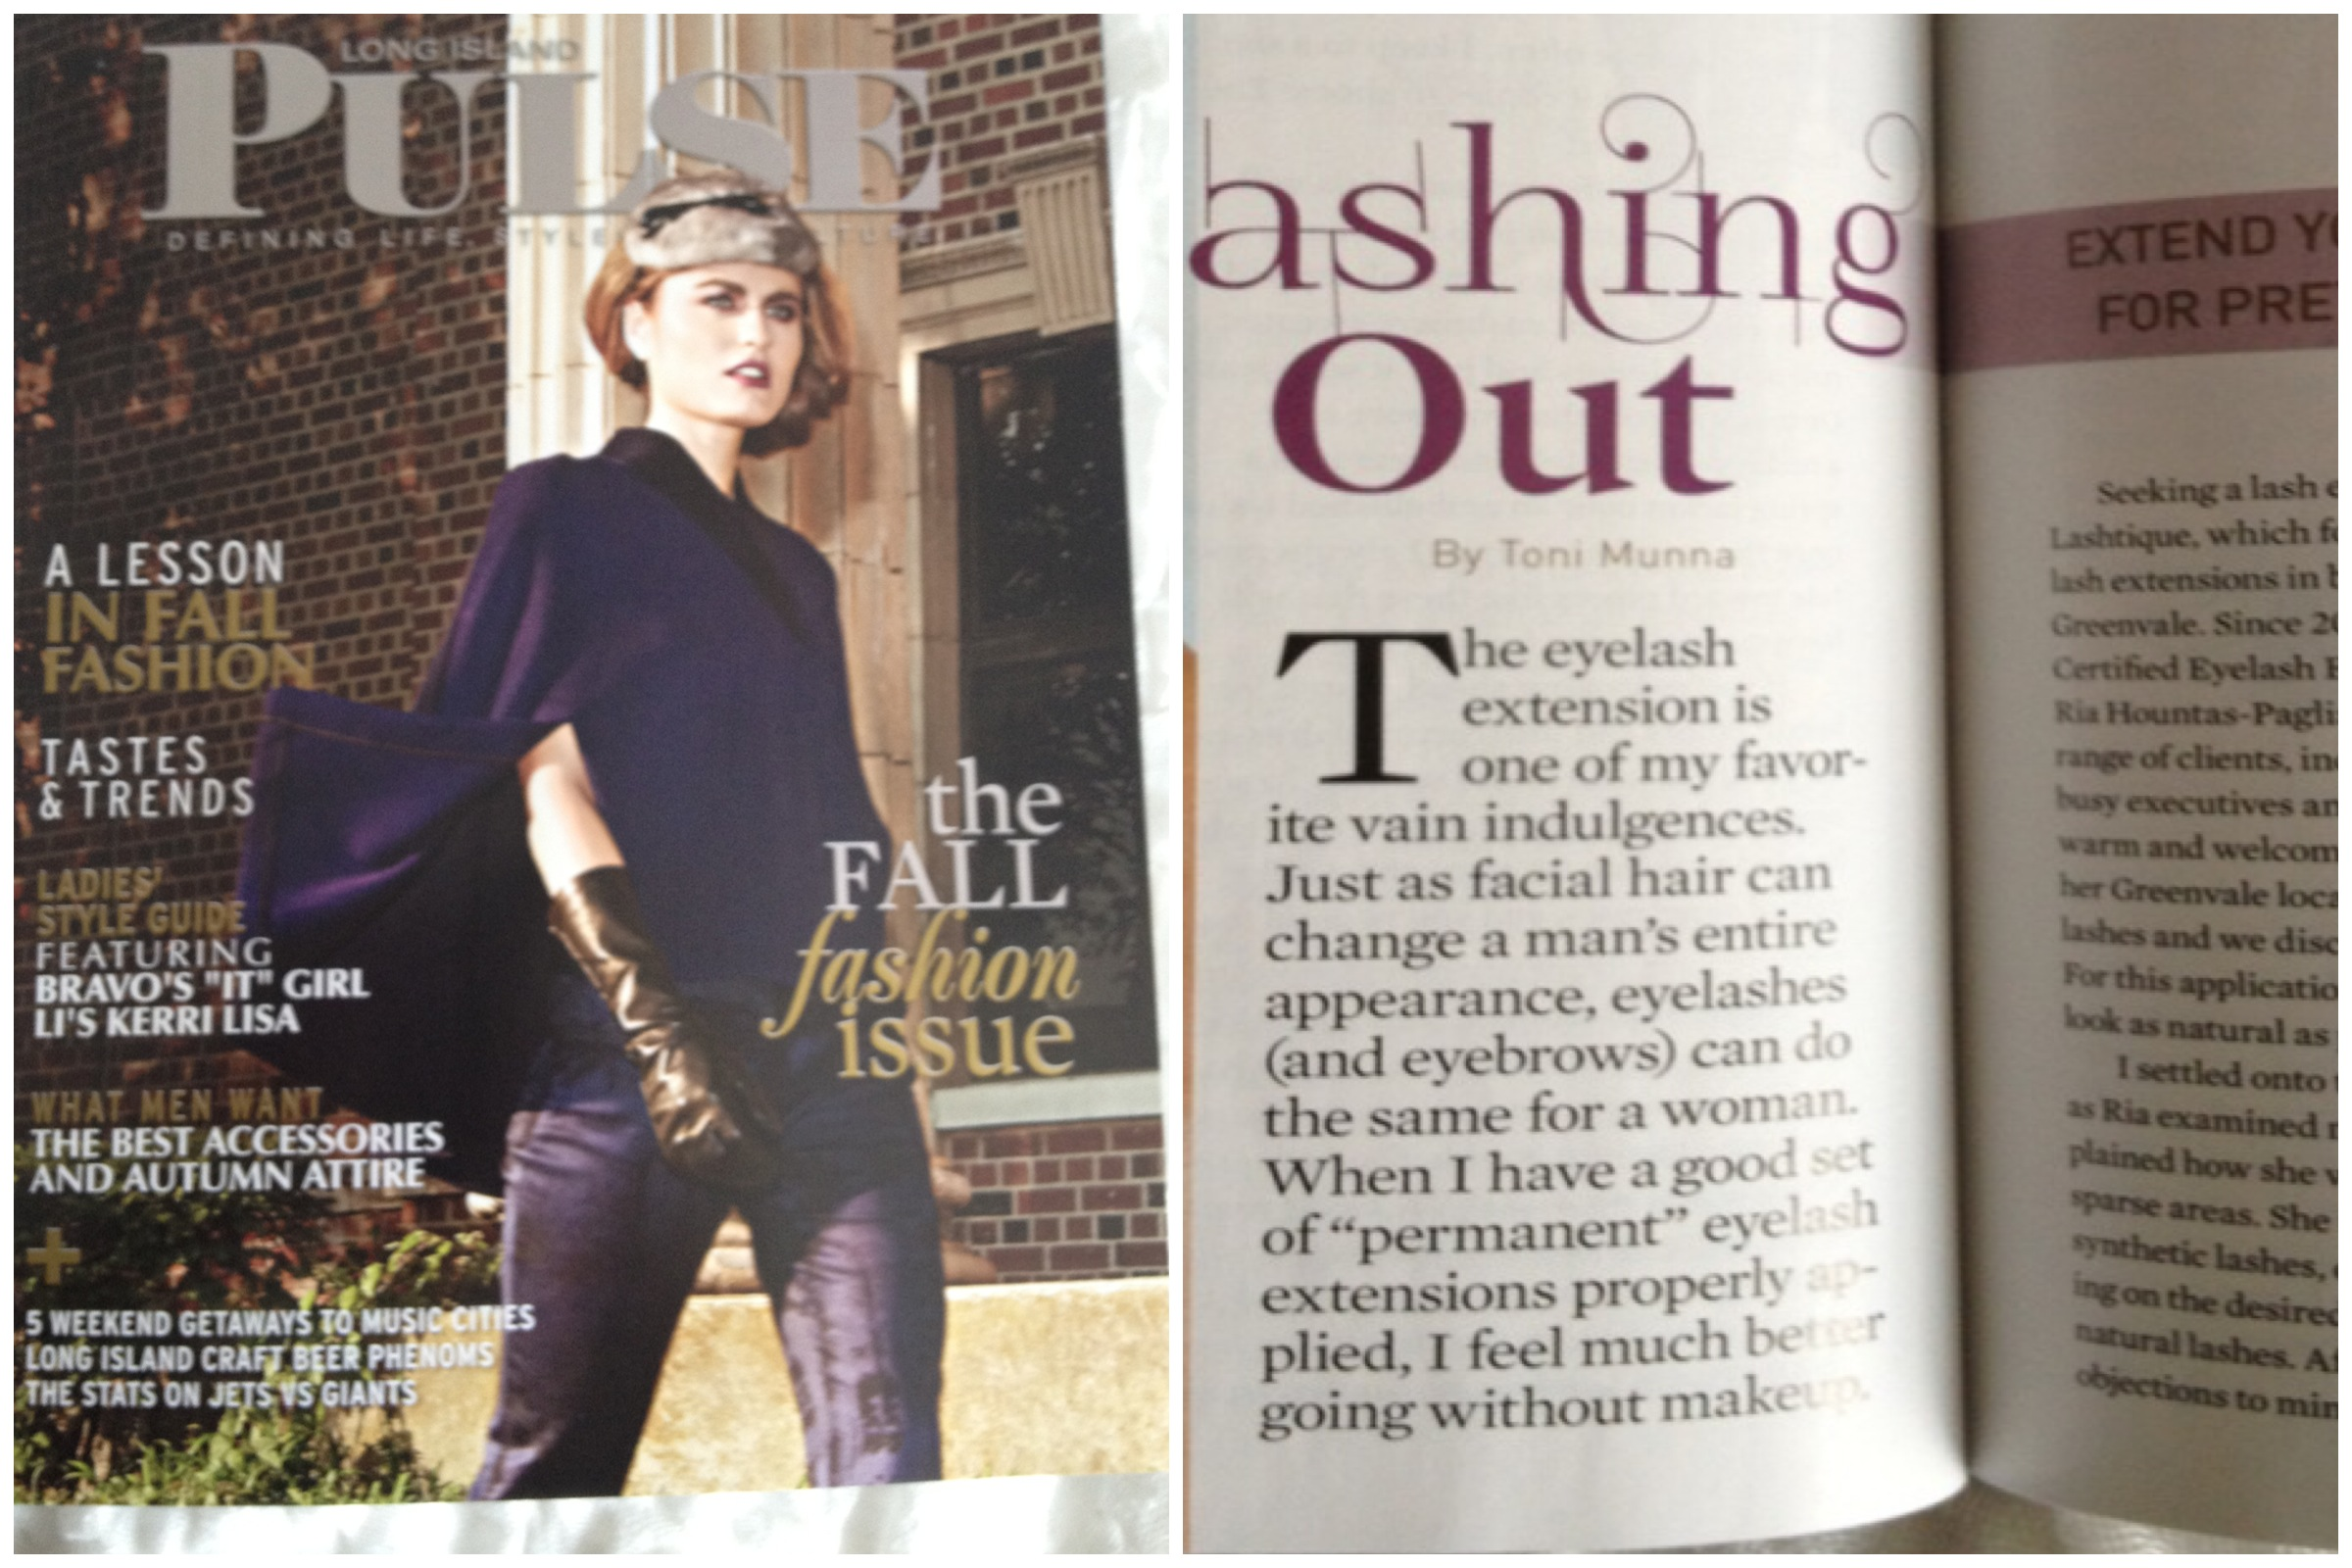 Long Island PULSE magazine Sept 2012   http://www.lipulse.com/health-beauty/article/lashing-out